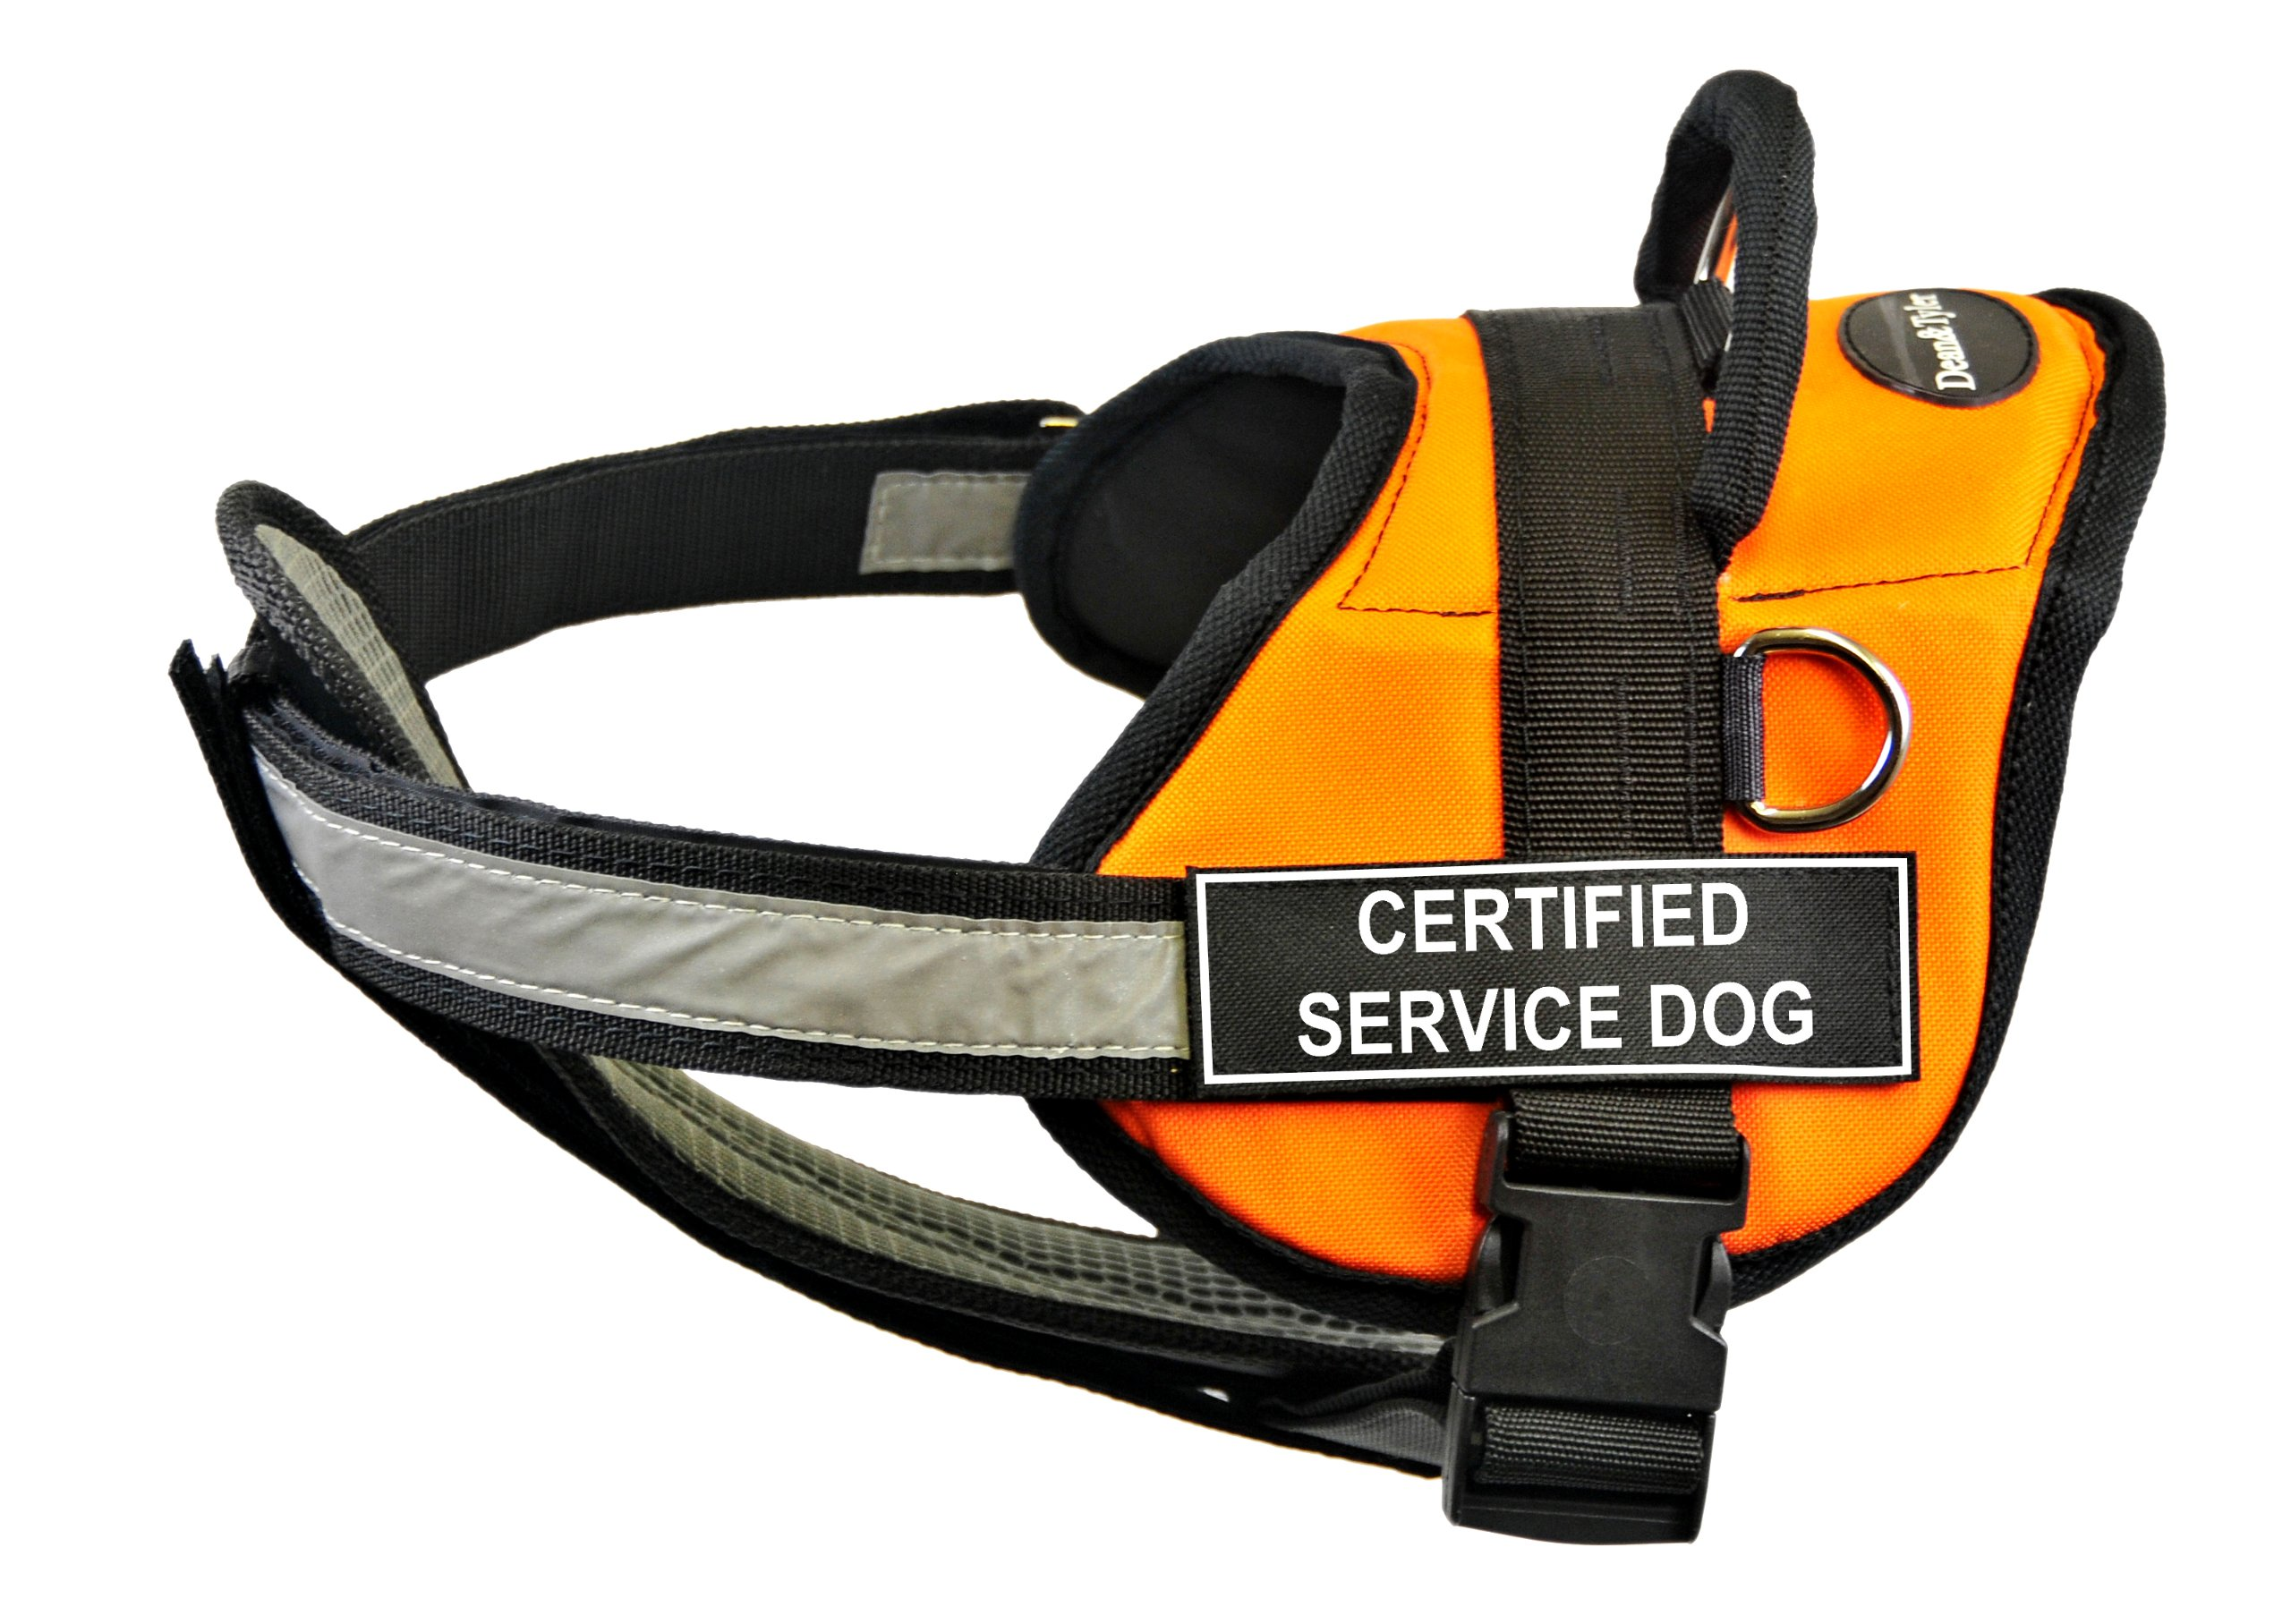 Dean & Tyler 21-Inch to 26-Inch Certified Service Dog Harness with Padded Reflective Chest Straps, X-Small, Orange/Black